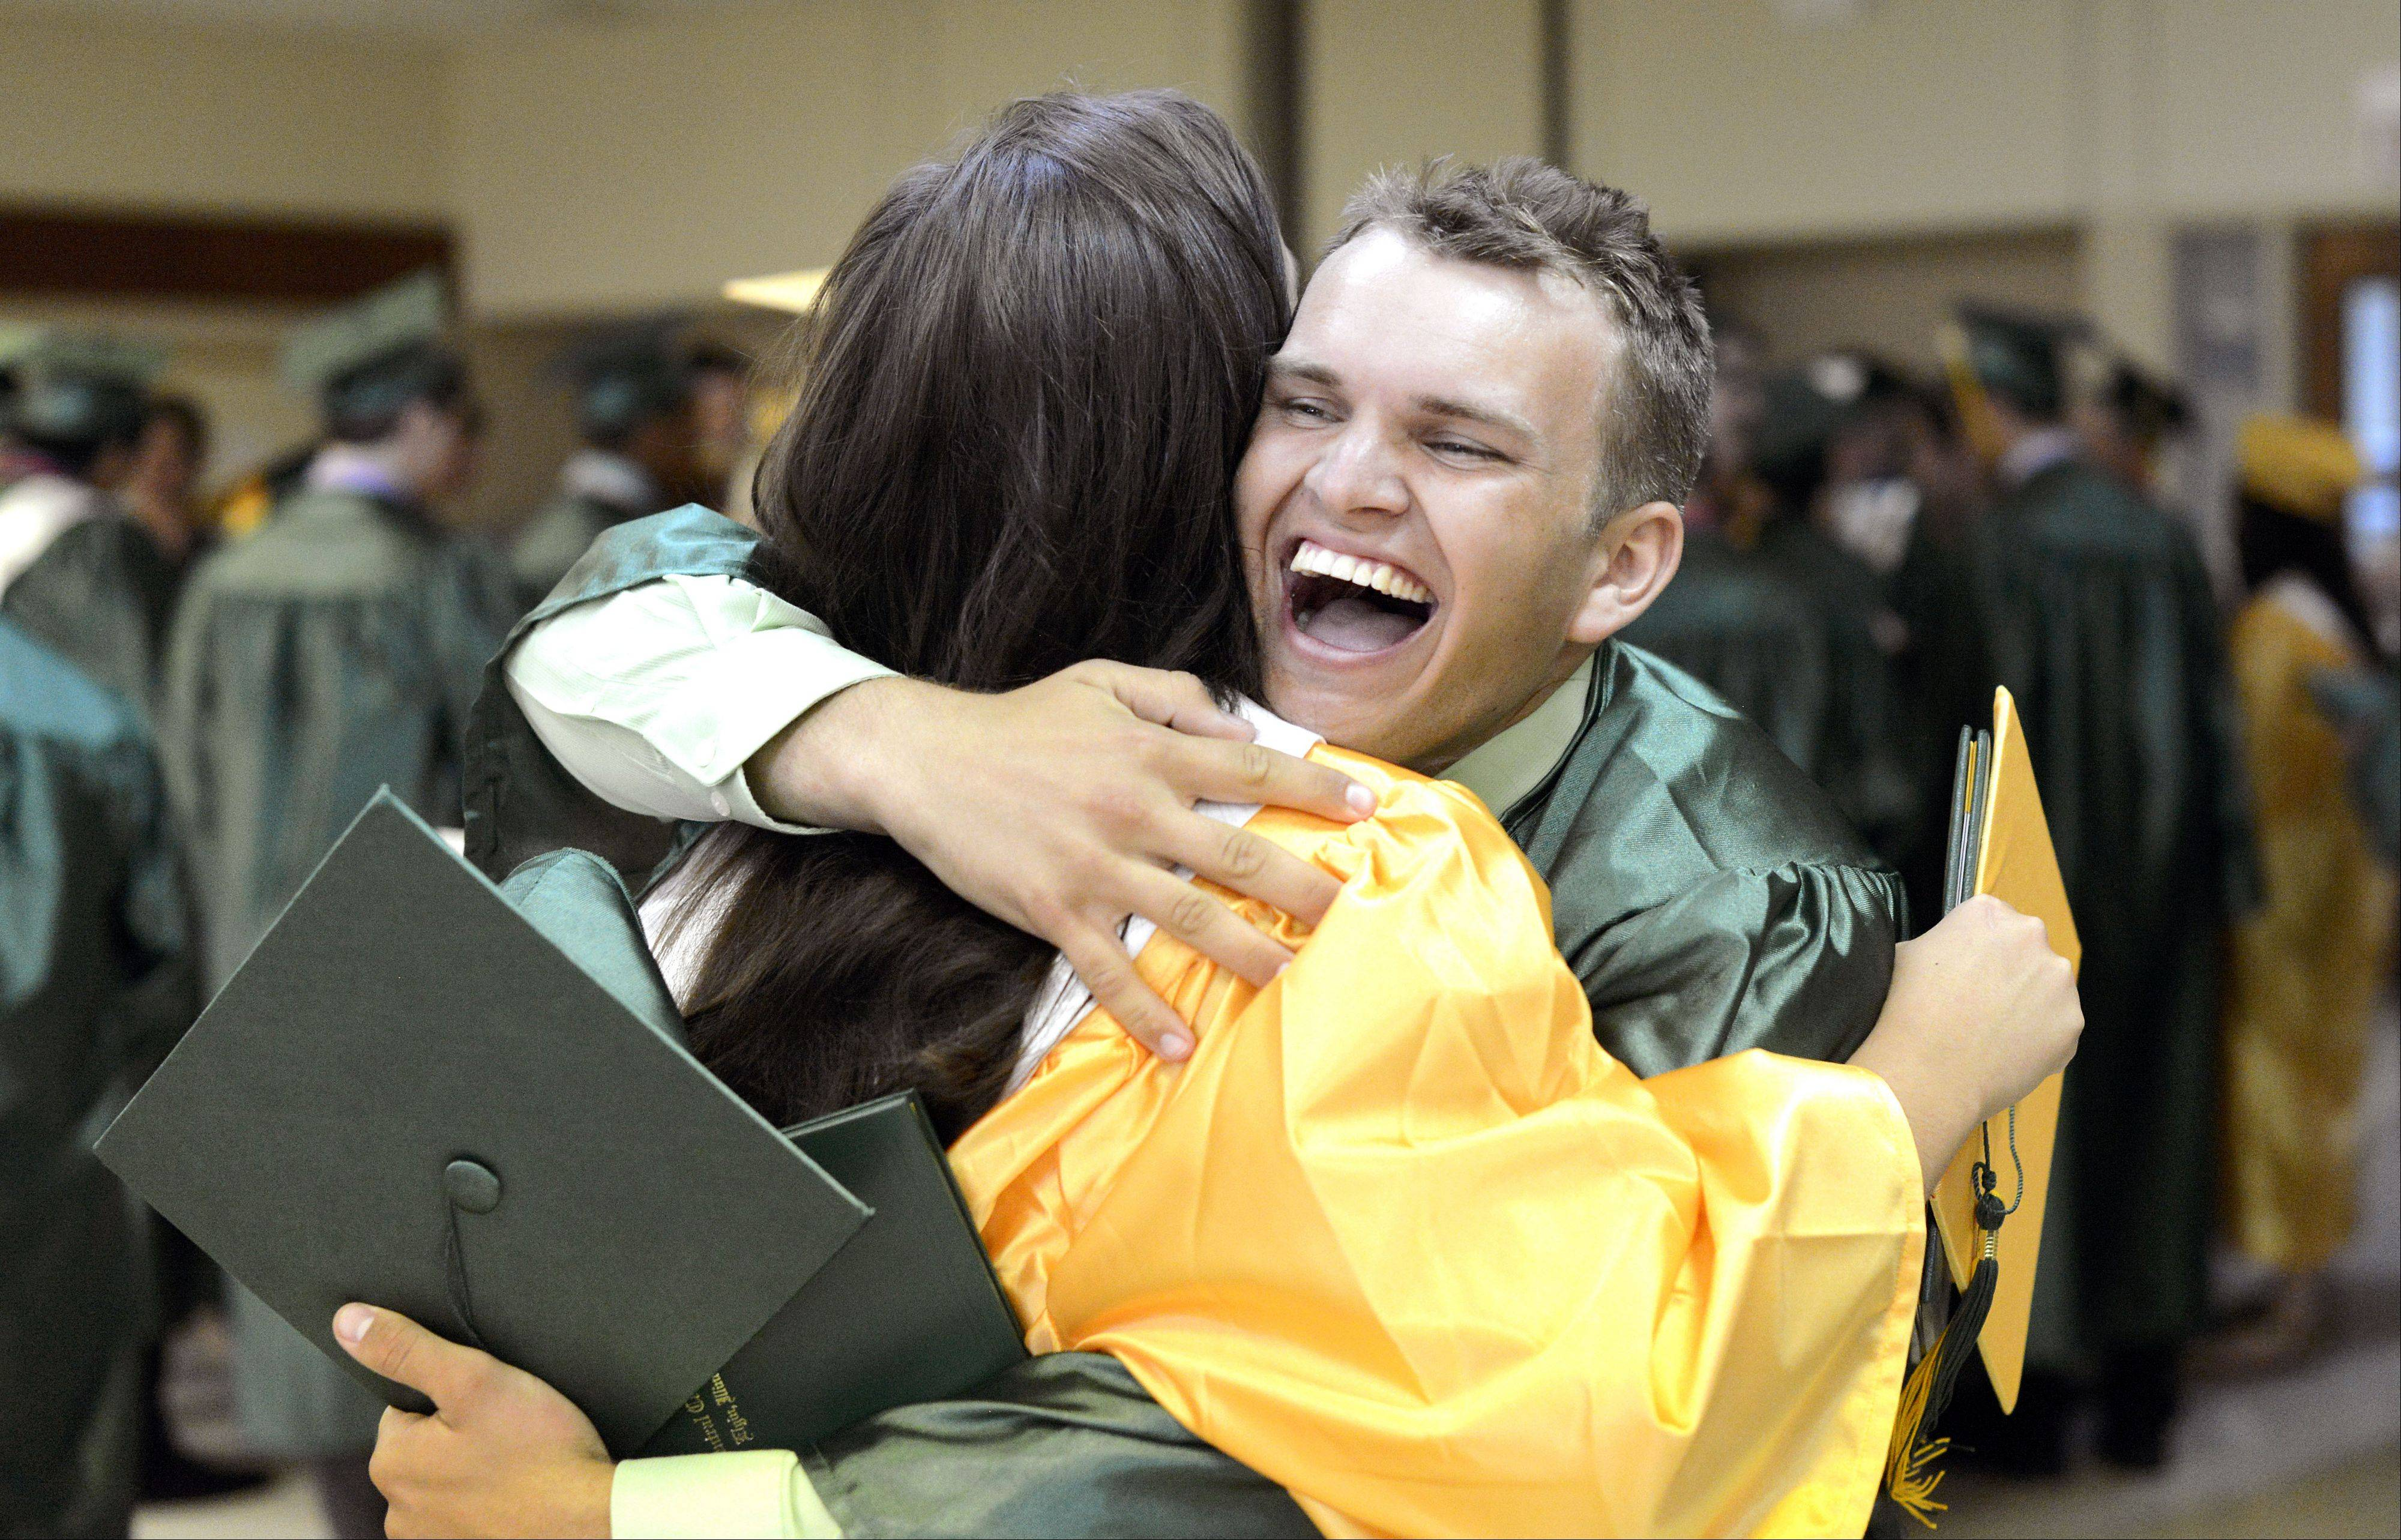 Sean McShane, 18, of Streamwood hugs fellow graduate Maris Worf, 18, of Elgin after their graduation ceremony.